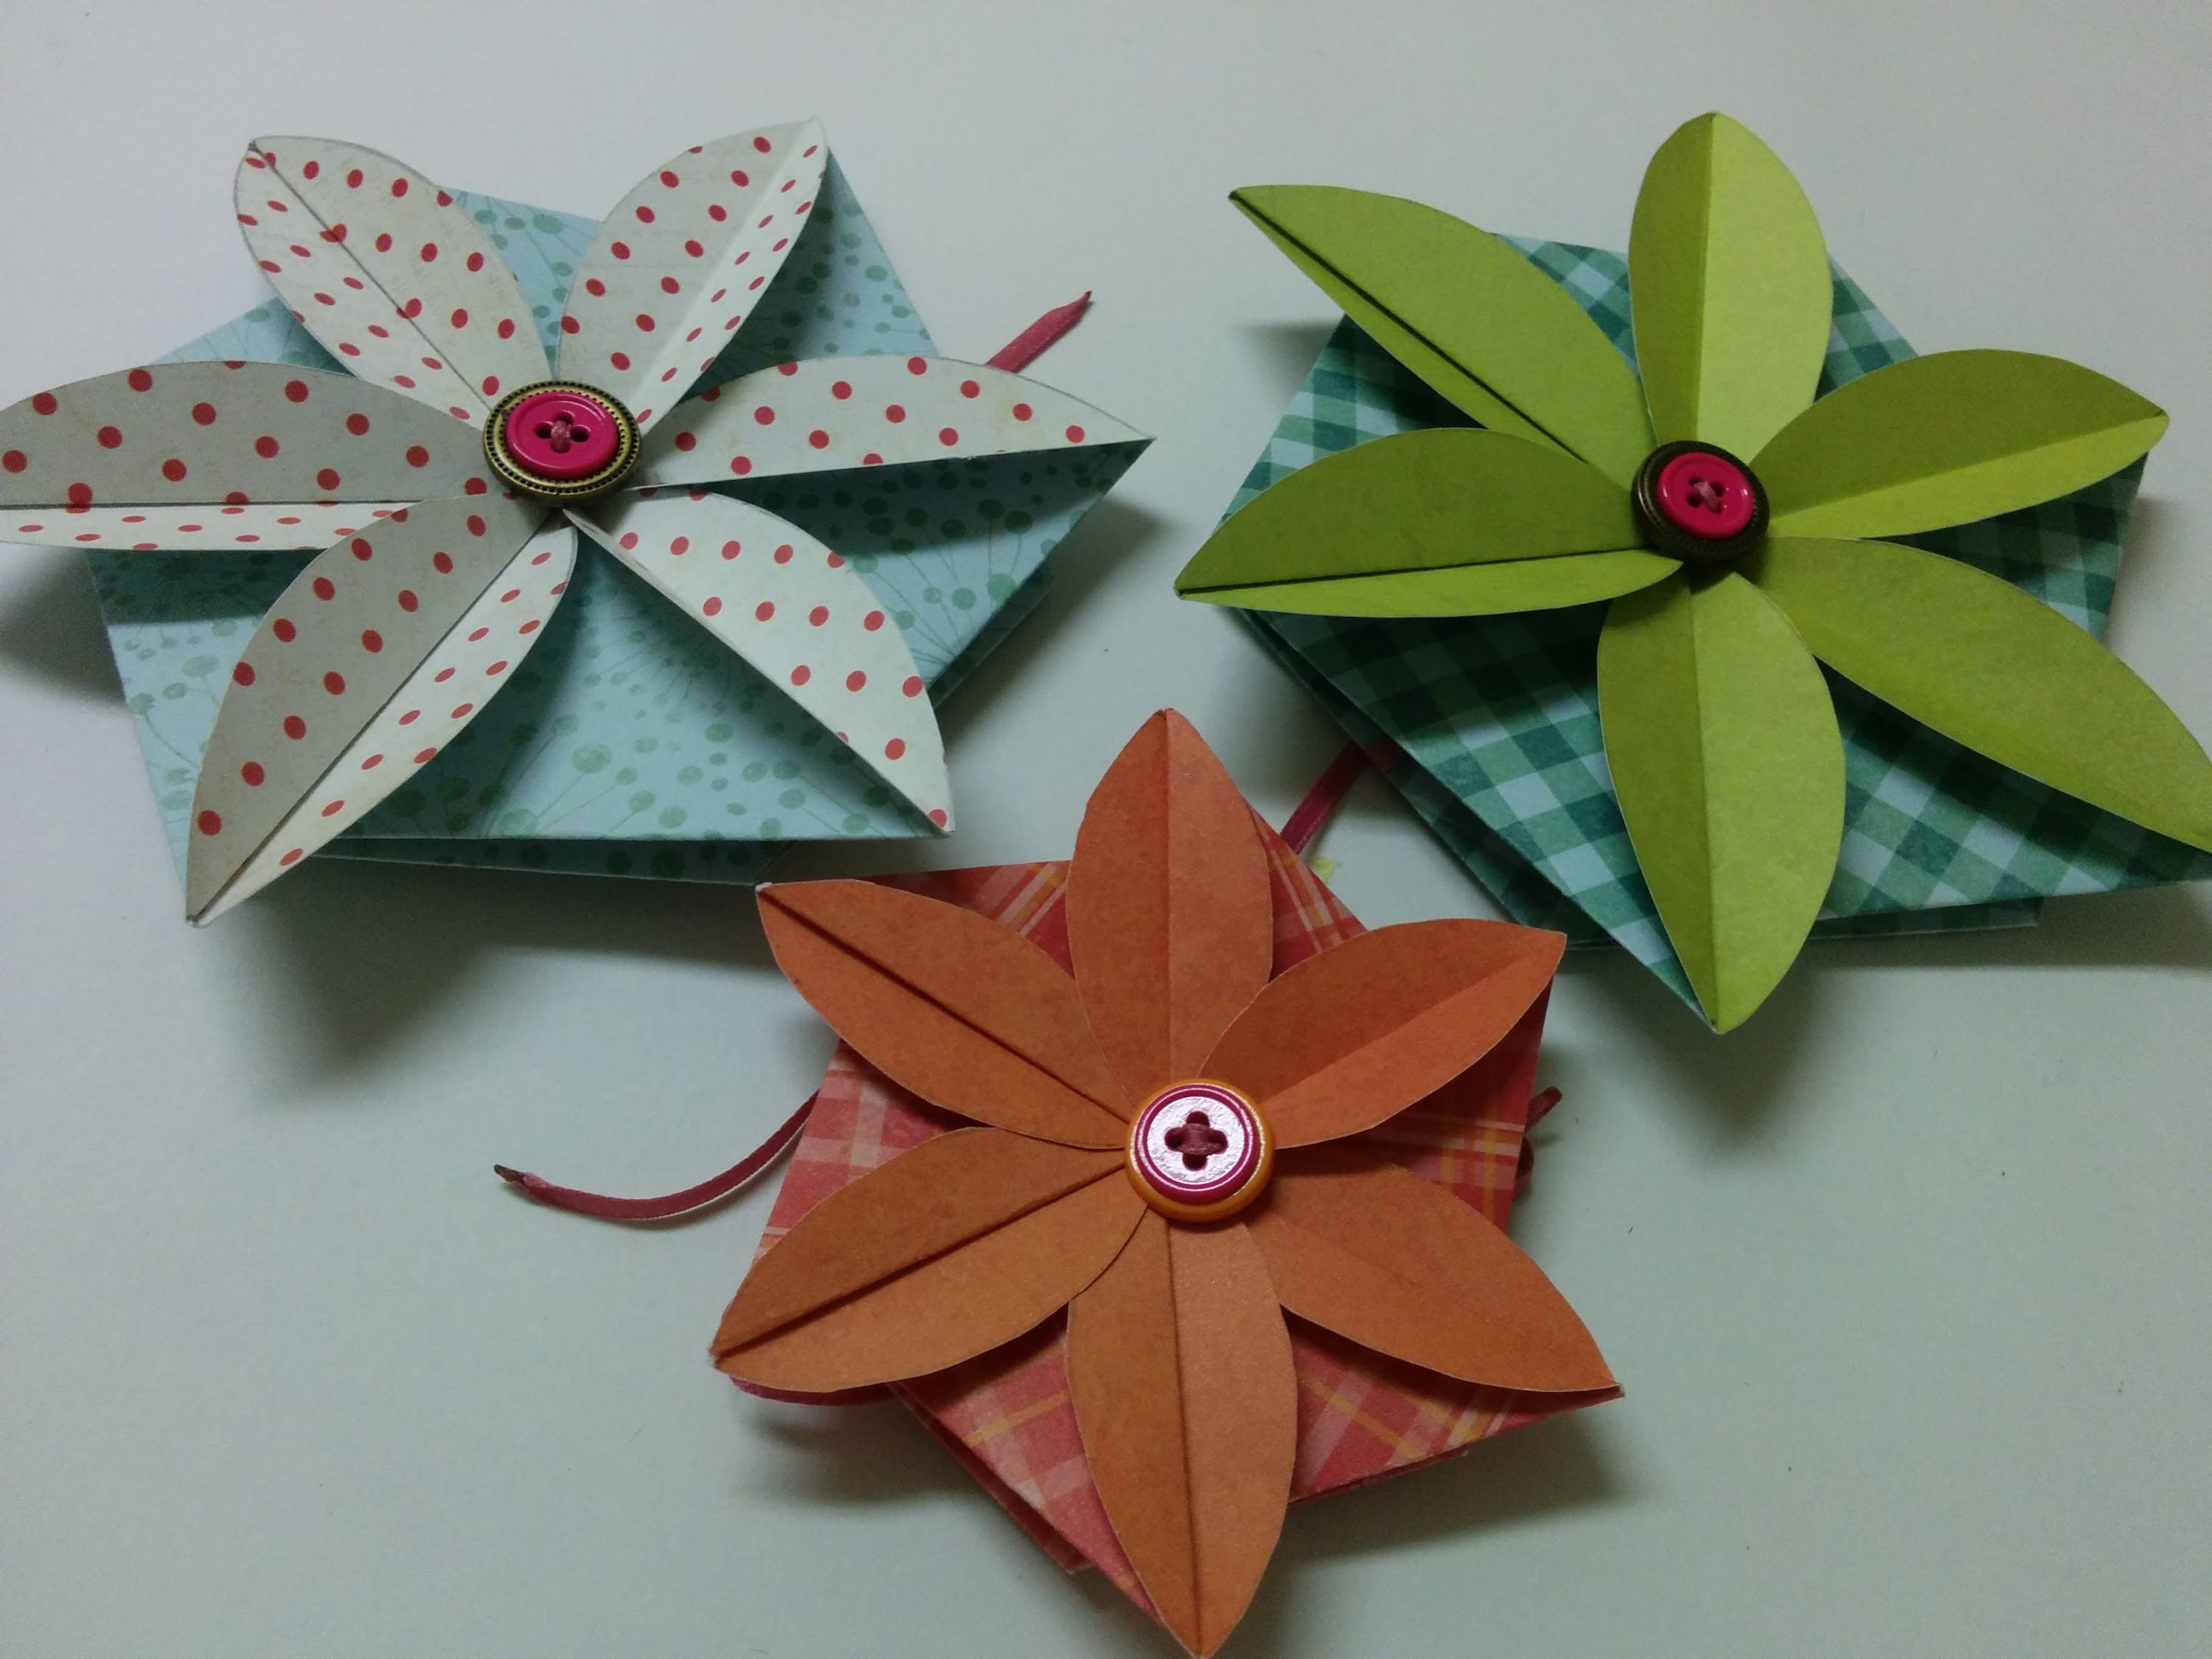 Art and craft how to make flower envelope card diy pinterest art and craft how to make flower envelope card mightylinksfo Choice Image